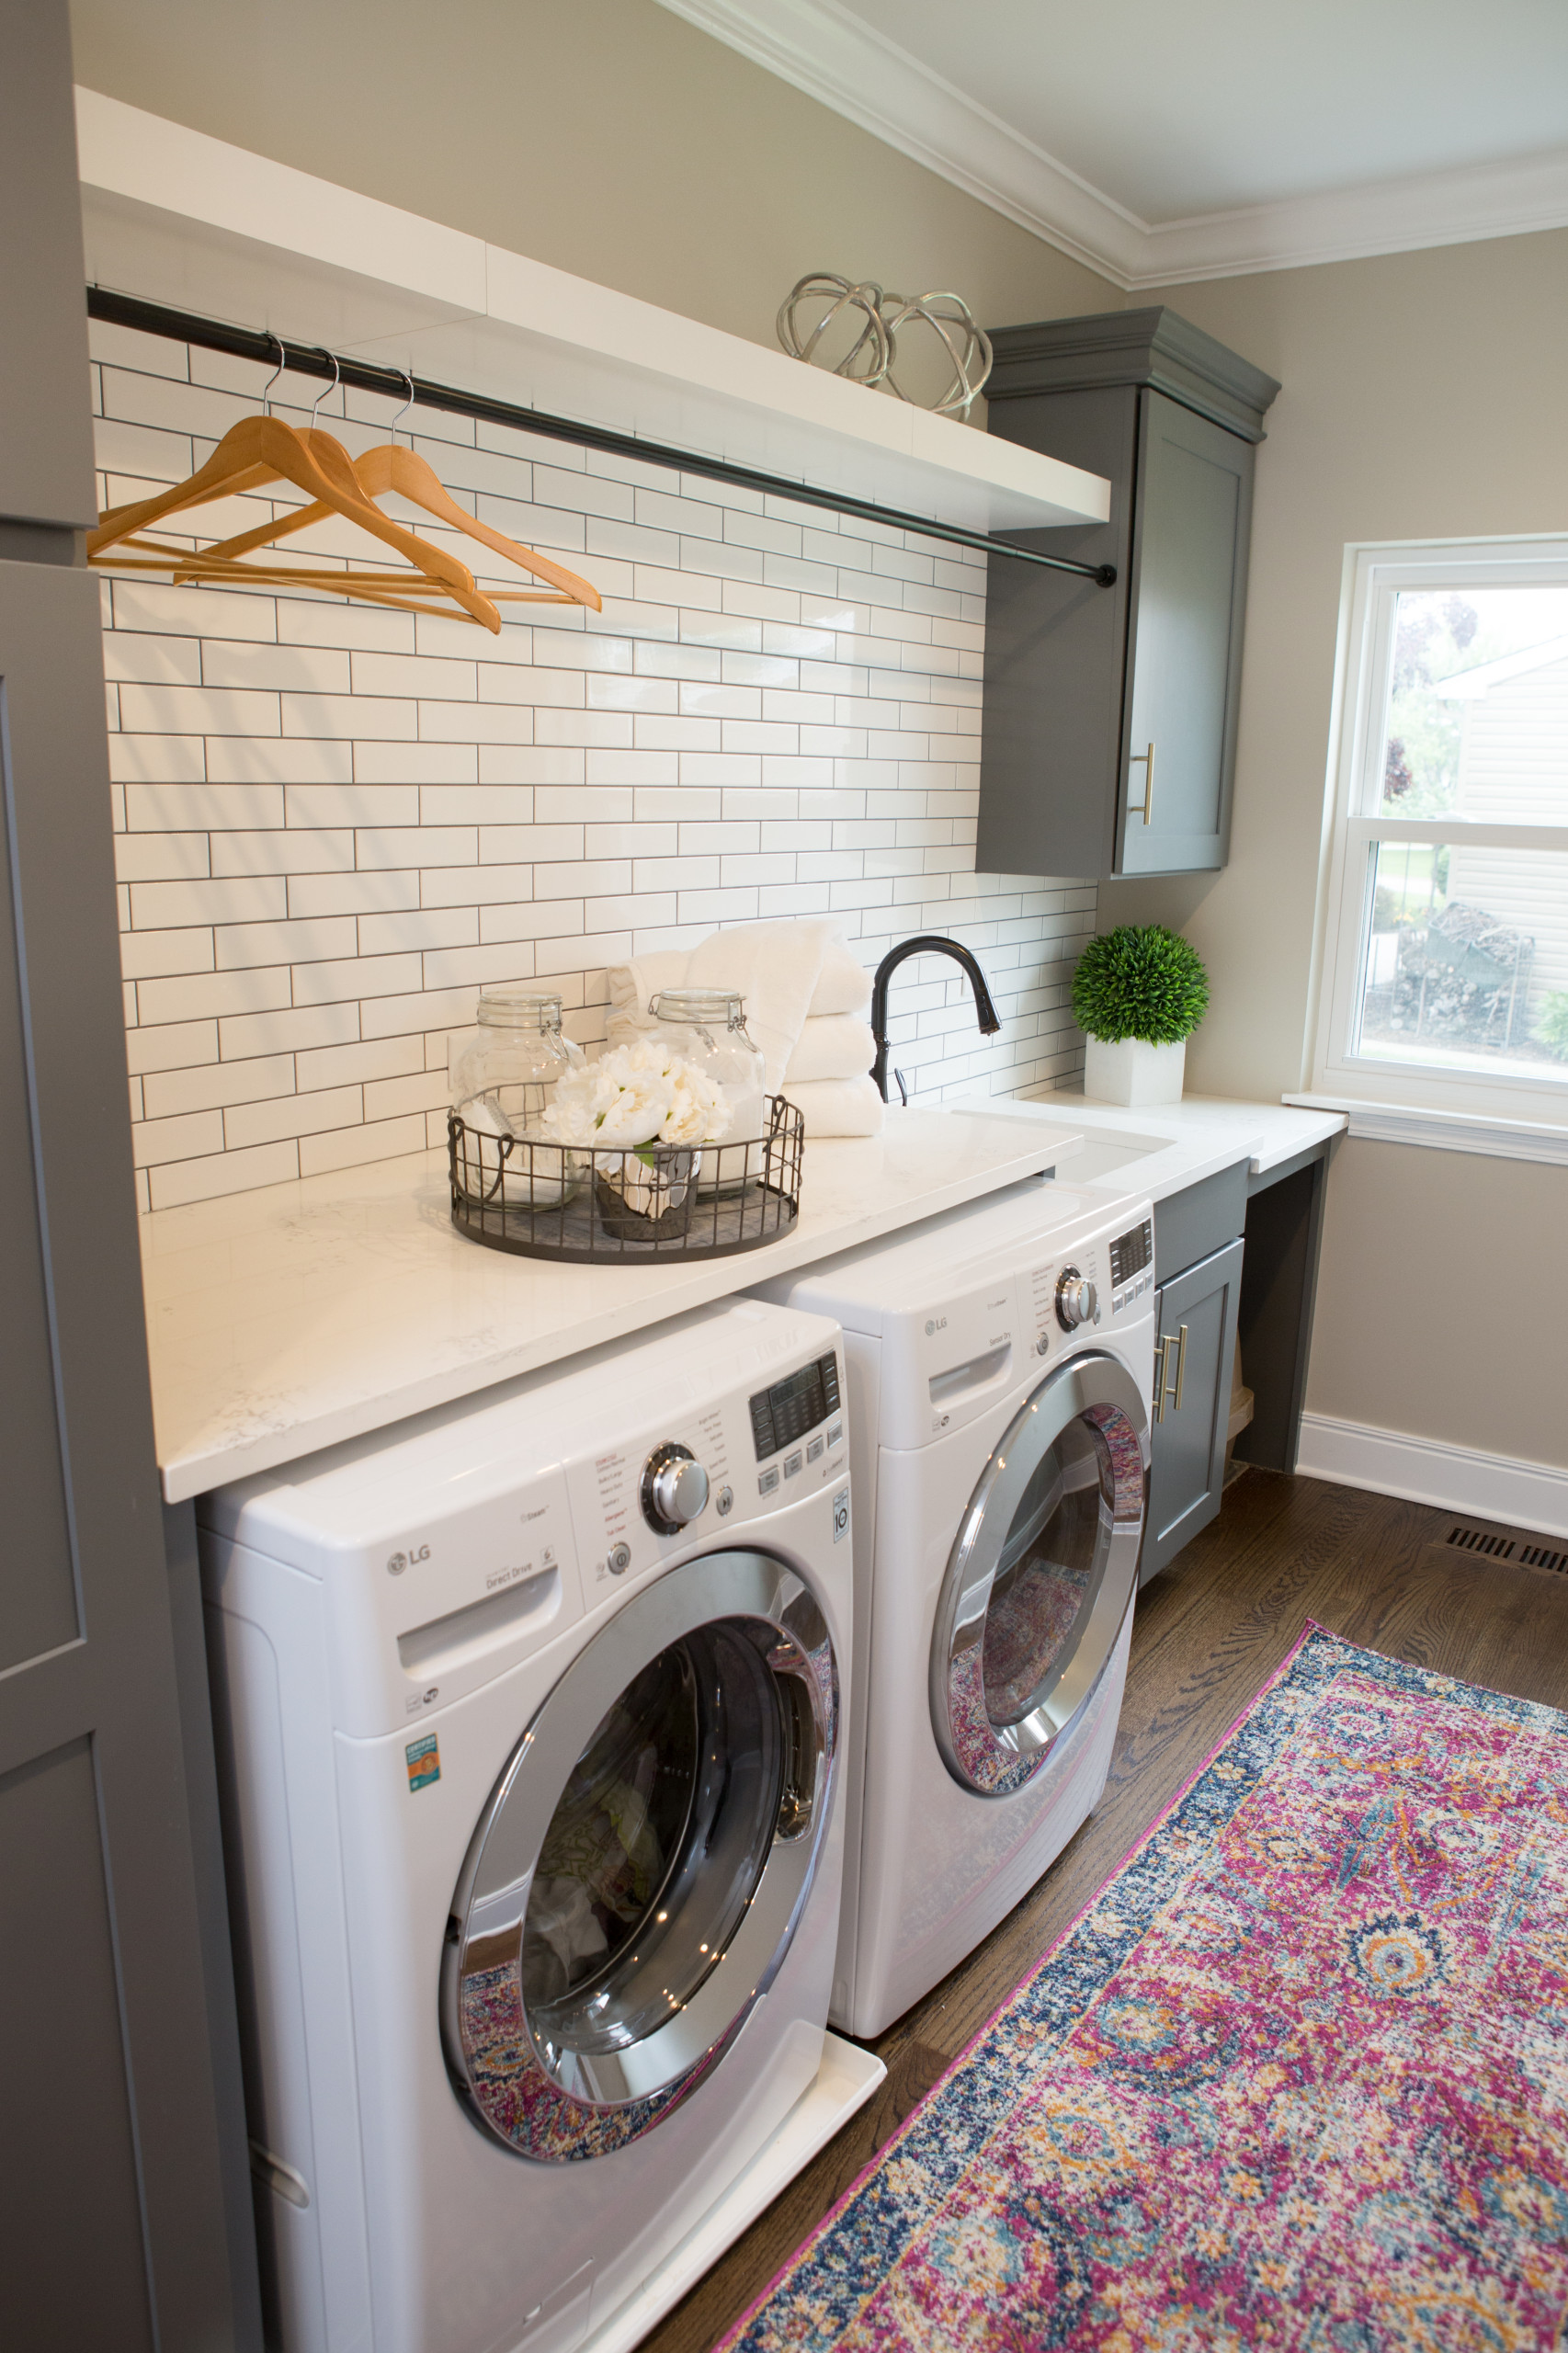 75 Beautiful Laundry Room With Gray Cabinets Pictures Ideas December 2020 Houzz